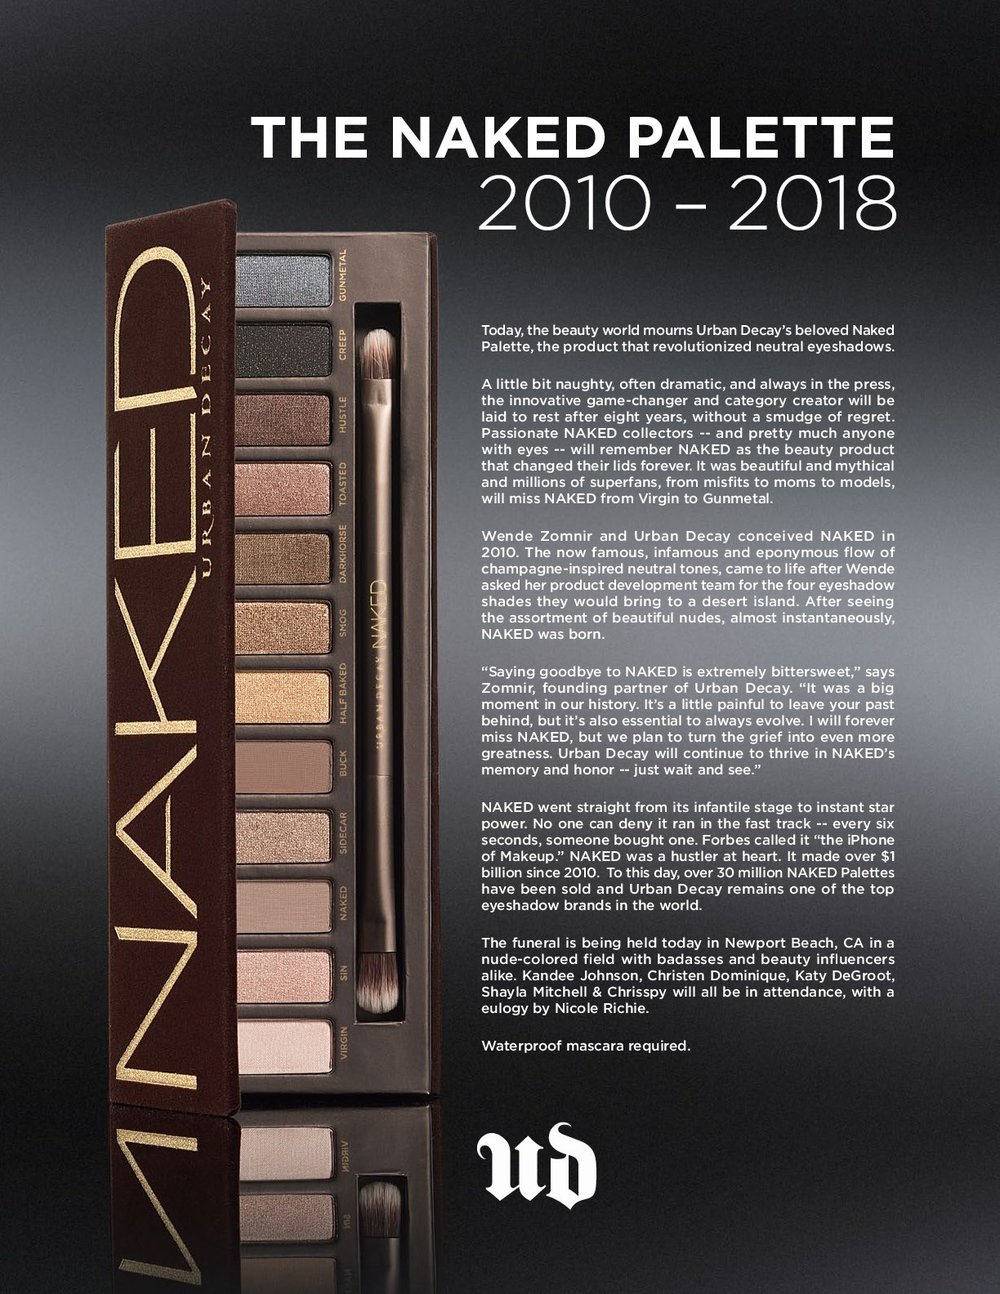 Urban_Decay_NAKED_Palette.jpg